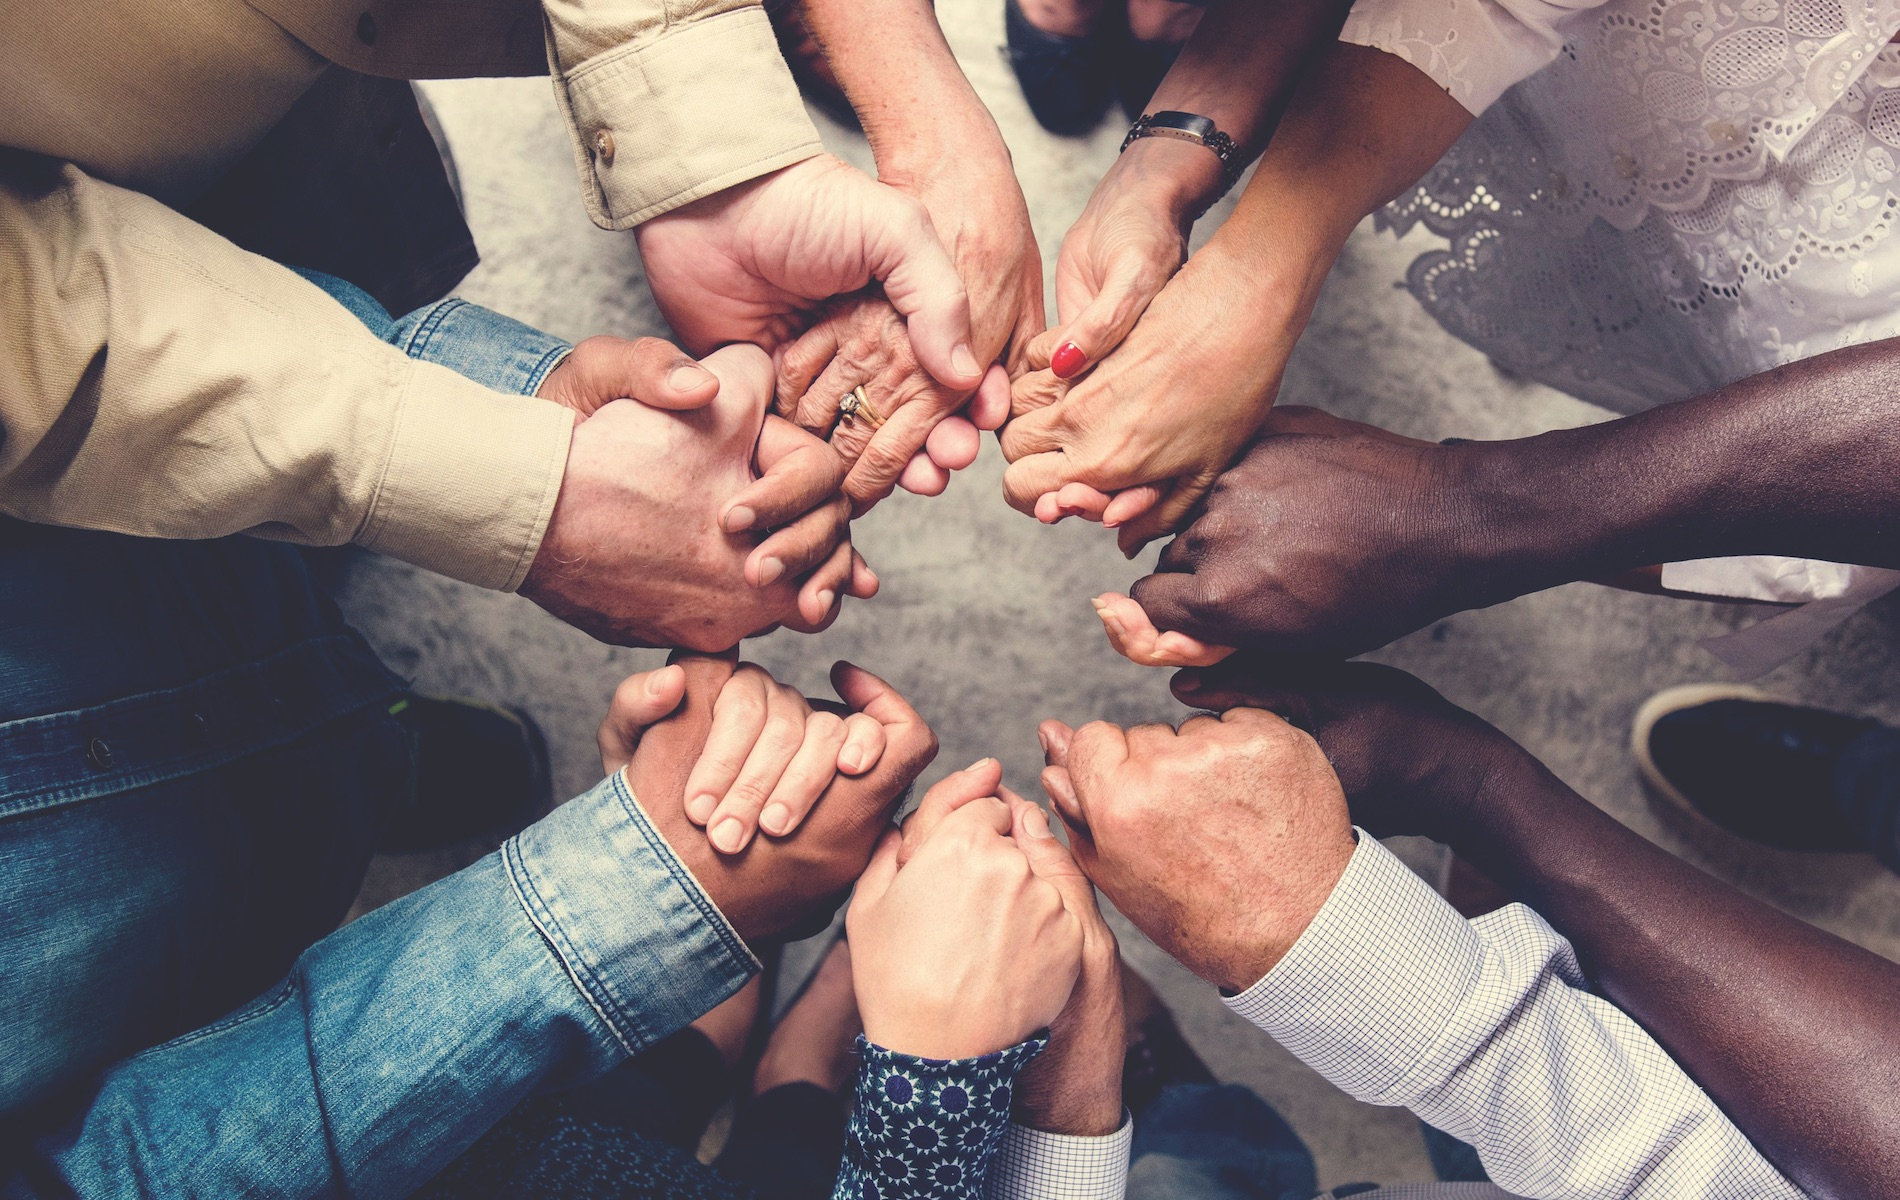 hands holding together diversity helping each other covid-19 response